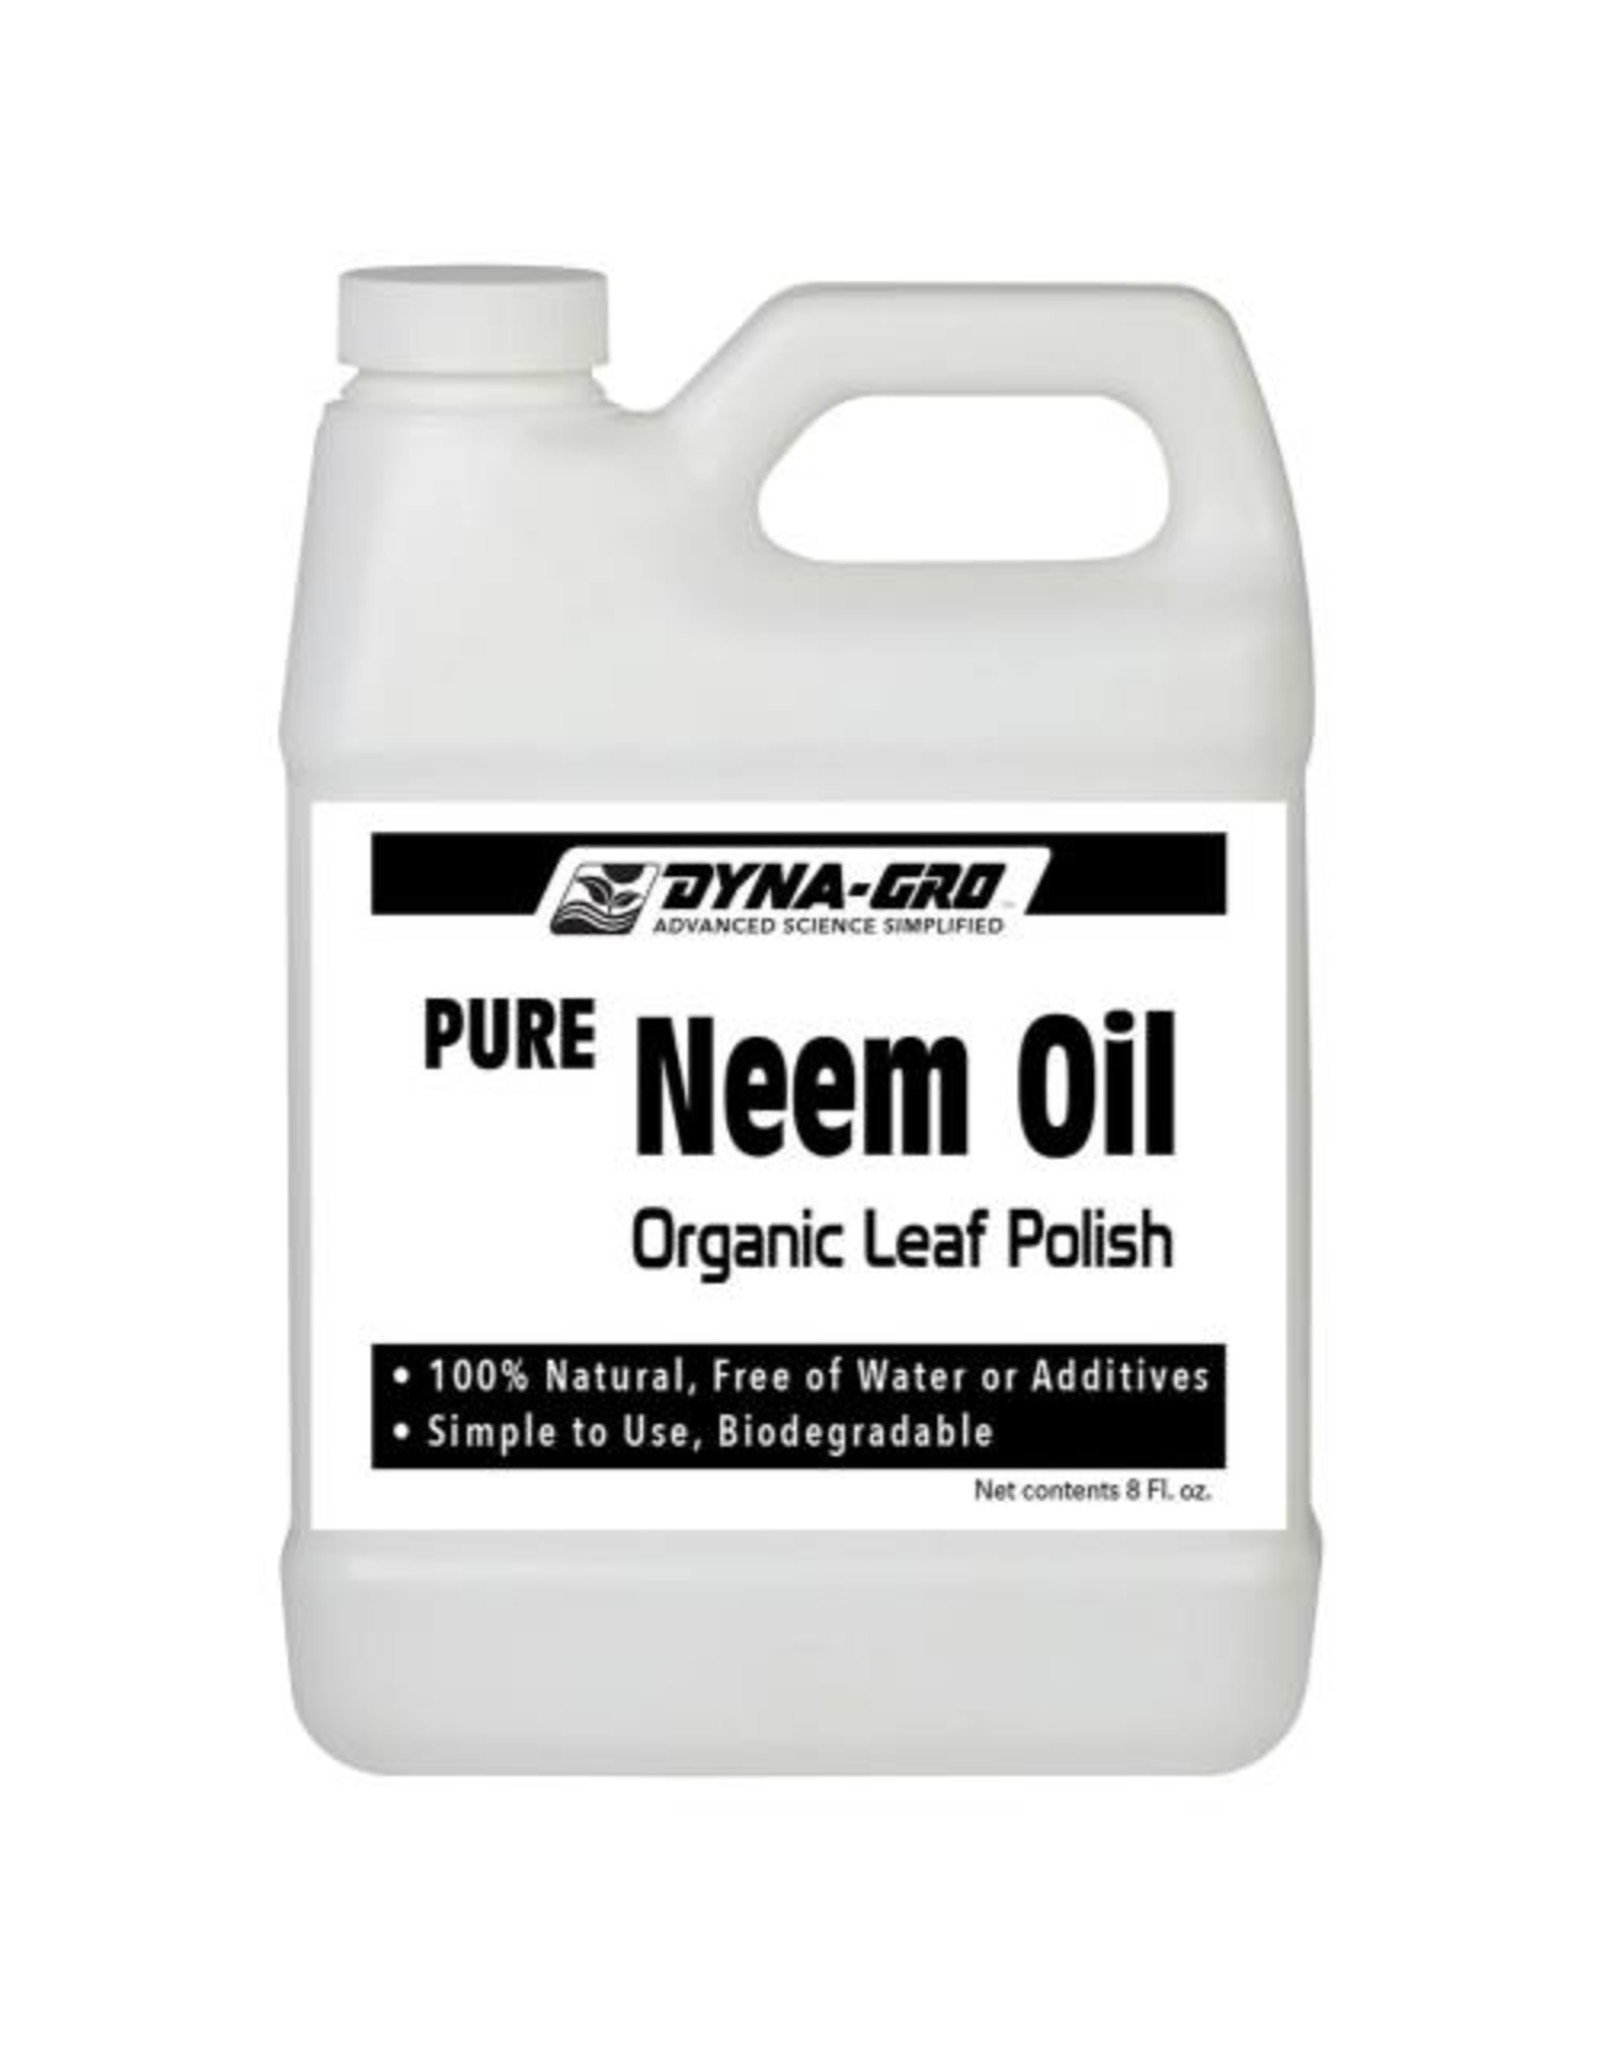 Dyna-Gro Dyna-Gro Pure Neem Oil - qt